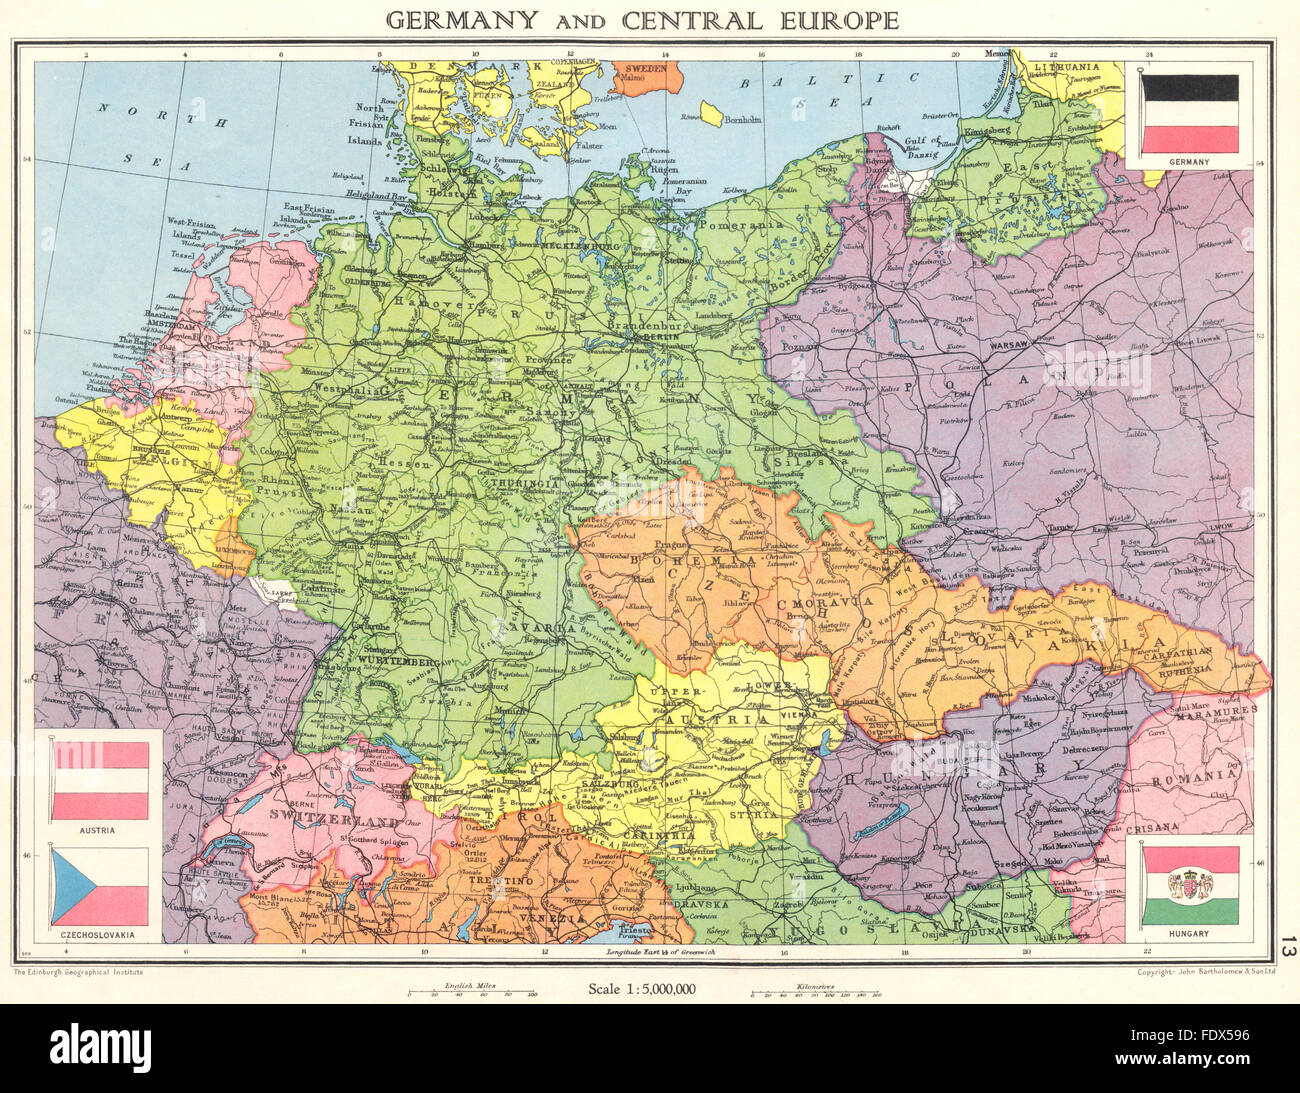 Map Of Germany 1938.Germany Central Europe Shortly Before World War 2